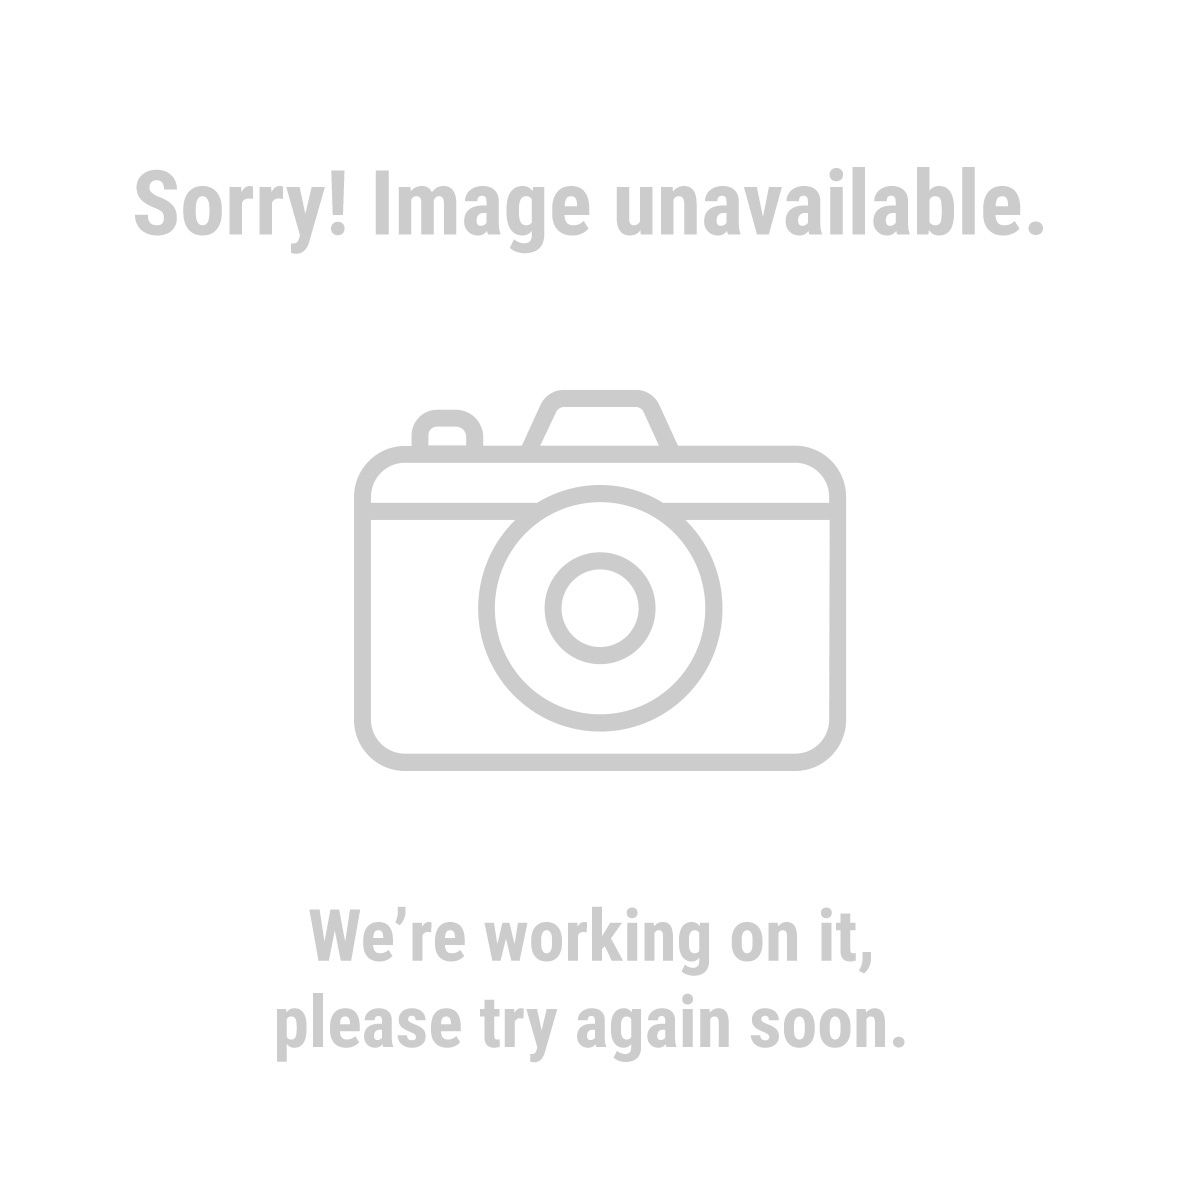 Admiral® 62733 7-1/4 in. 24T Framing Circular Saw Blade